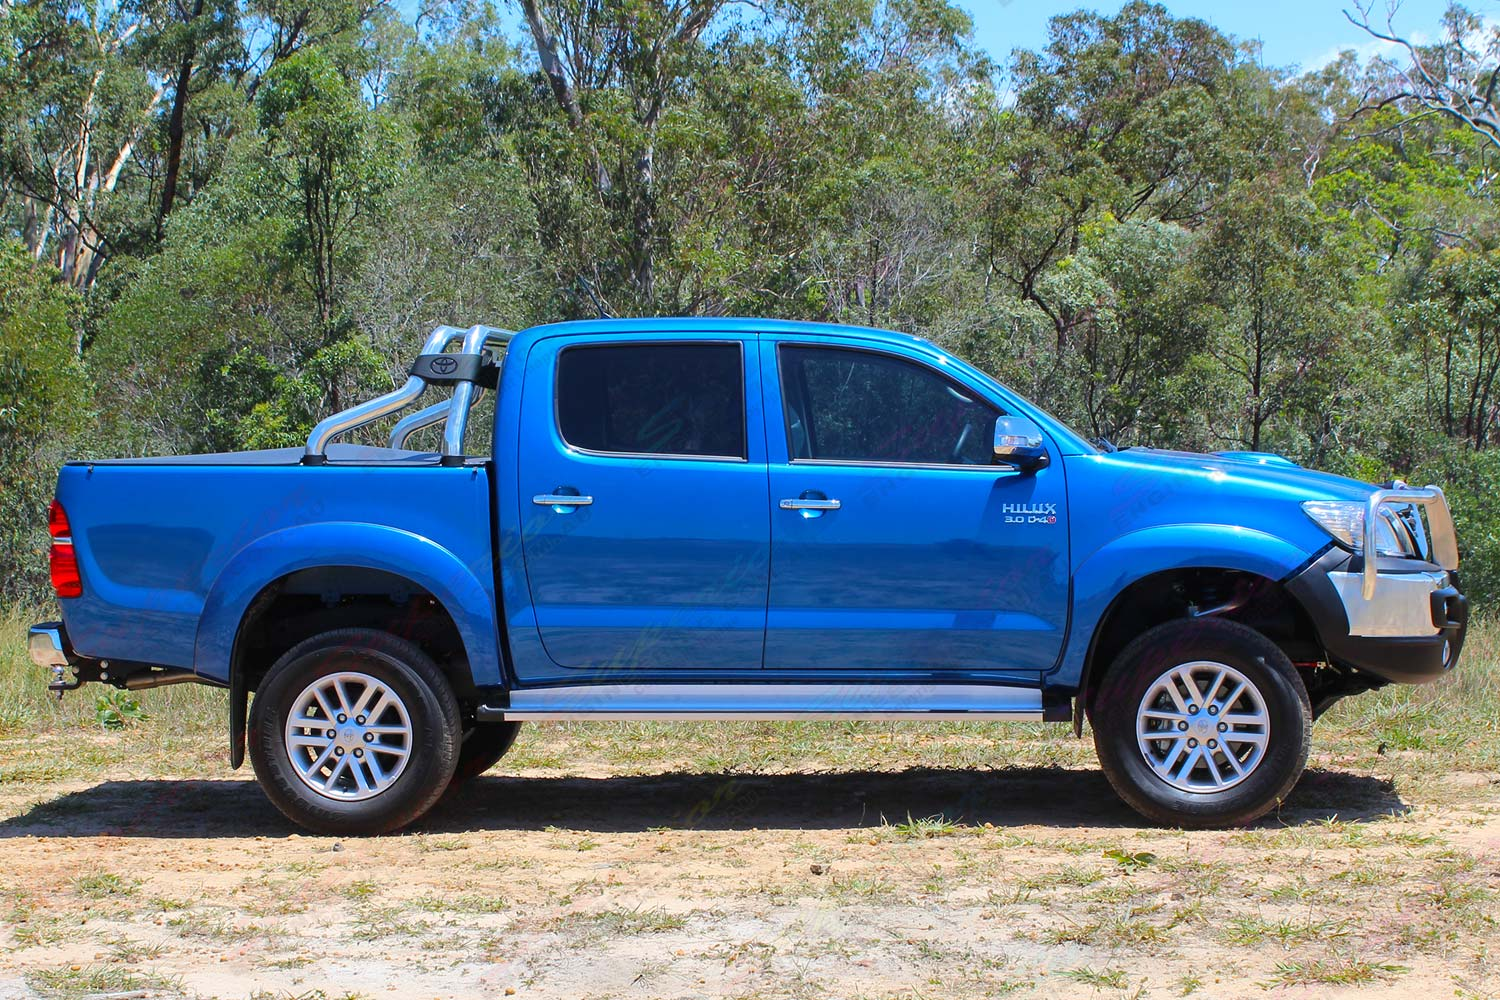 Right side view of a blue dual cab Toyota Hilux (Vigo) fitted with a premium 3 inch Bilstein lift kit